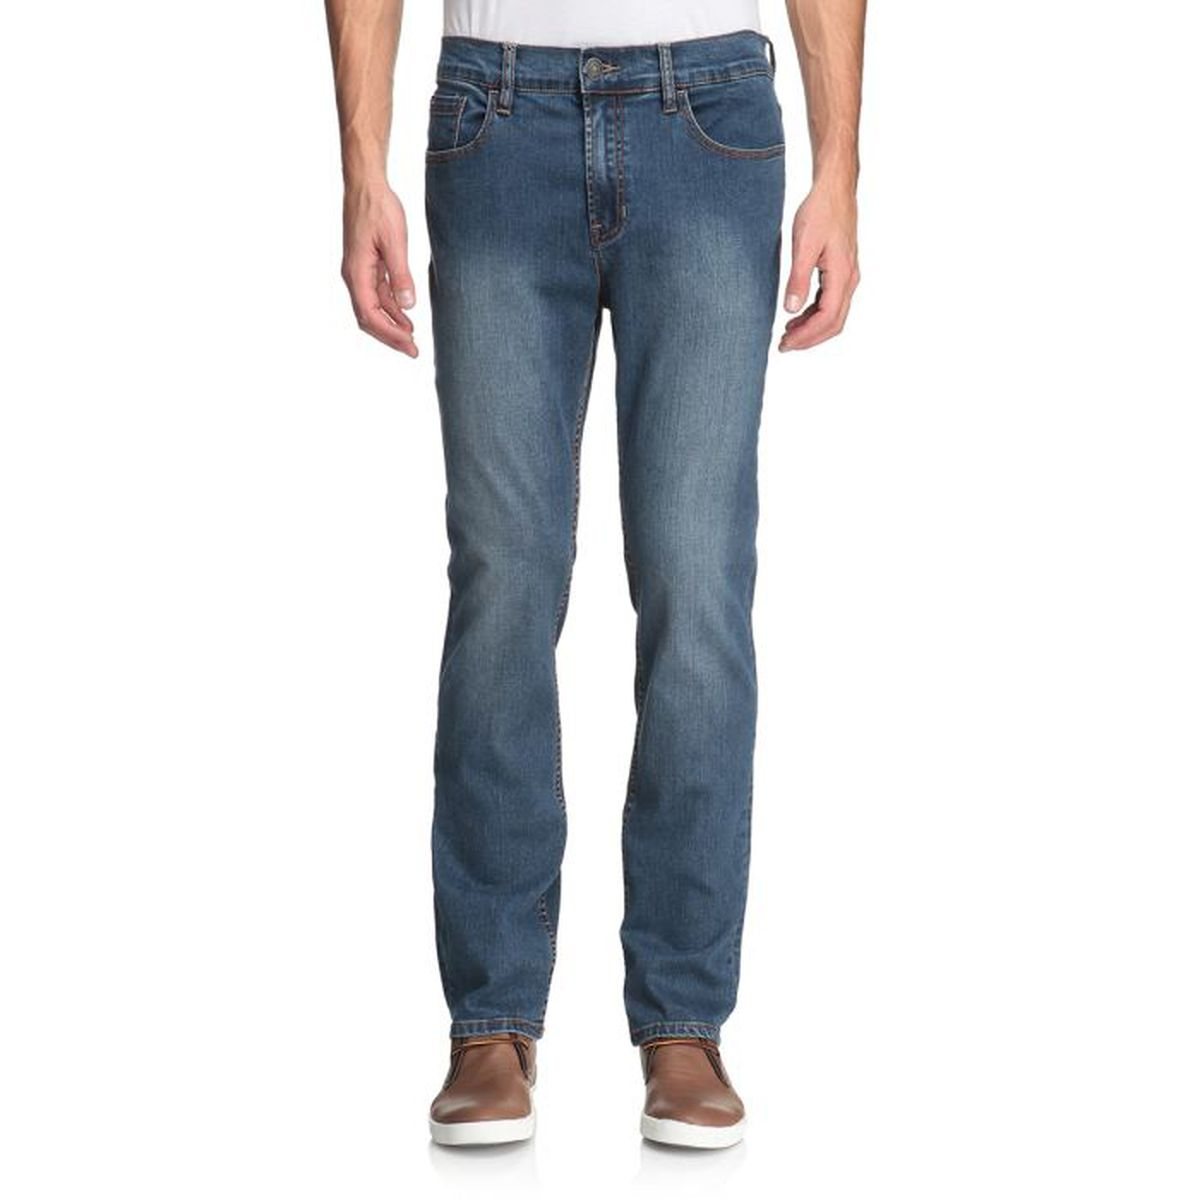 Homme Cooper E811 Jean Achat Lee Vente Regular Jeans Stone fgYvb6y7